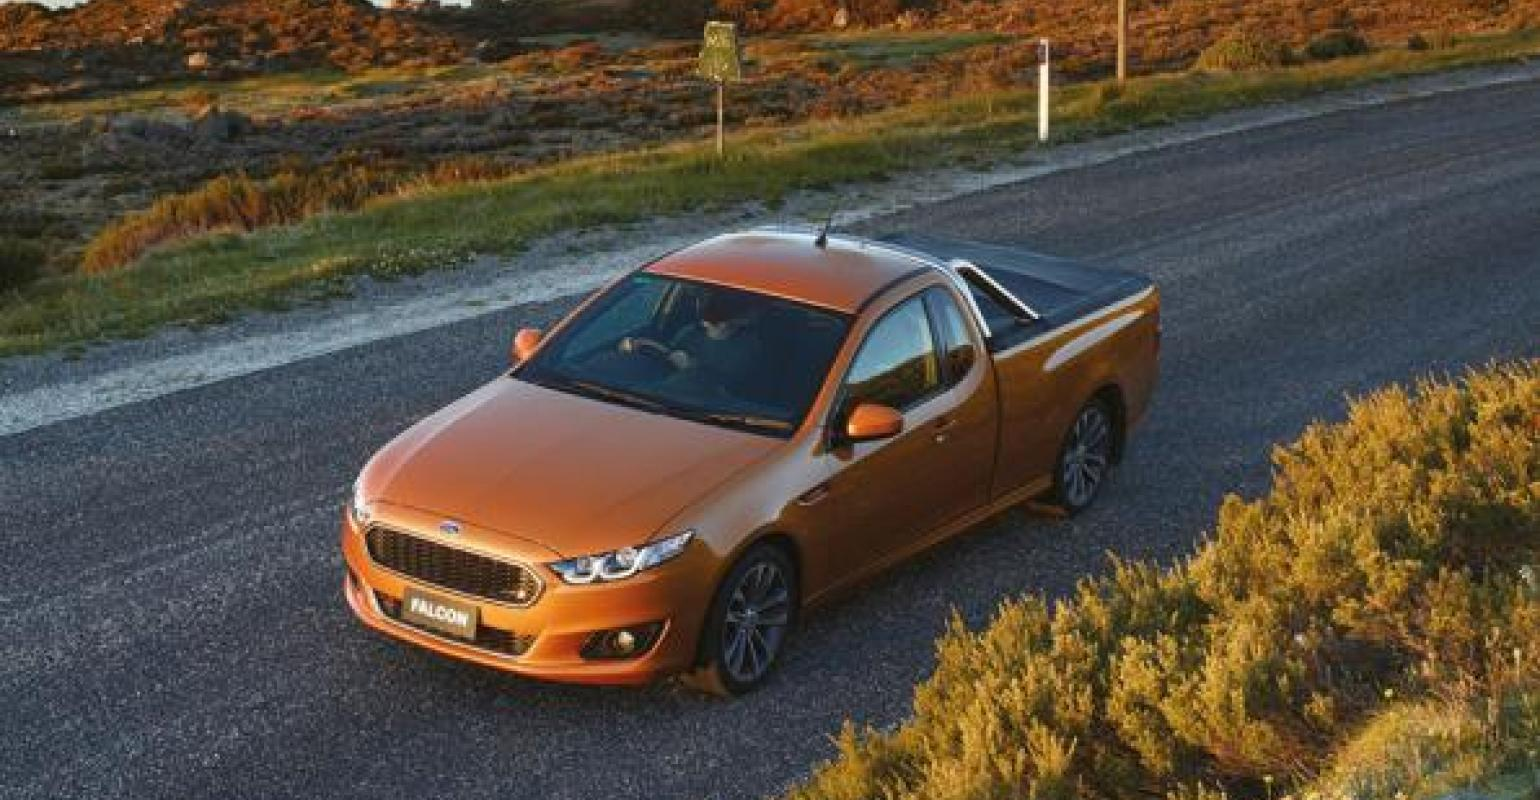 Ford australia website continues featuring defunct falcon